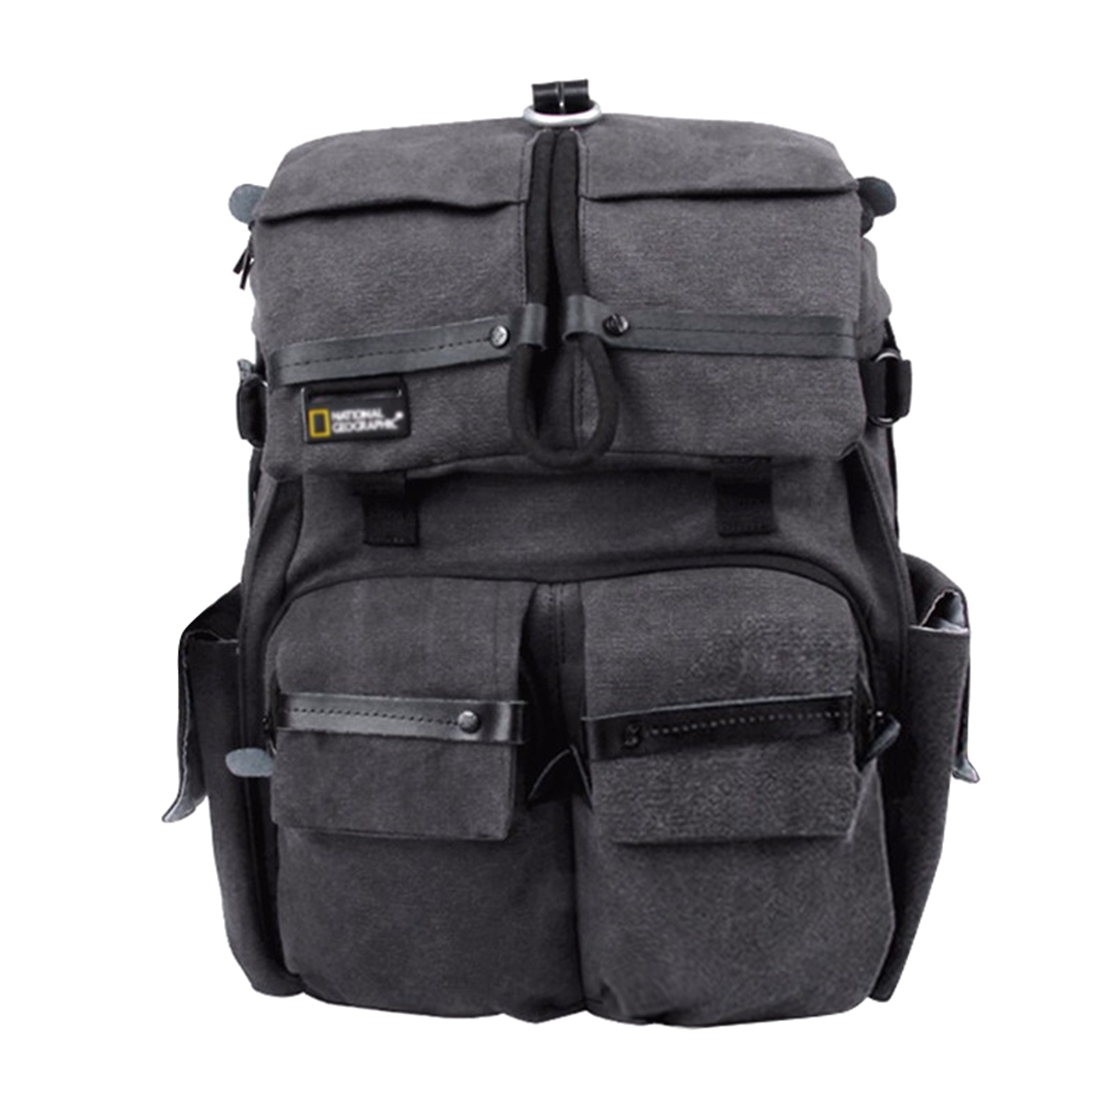 High Quality Camera Bag NATIONAL GEOGRAPHIC NG W5070 Camera Backpack Genuine Outdoor Travel Camera Bag (Extra thick version) рюкзак national geographic ng w5070